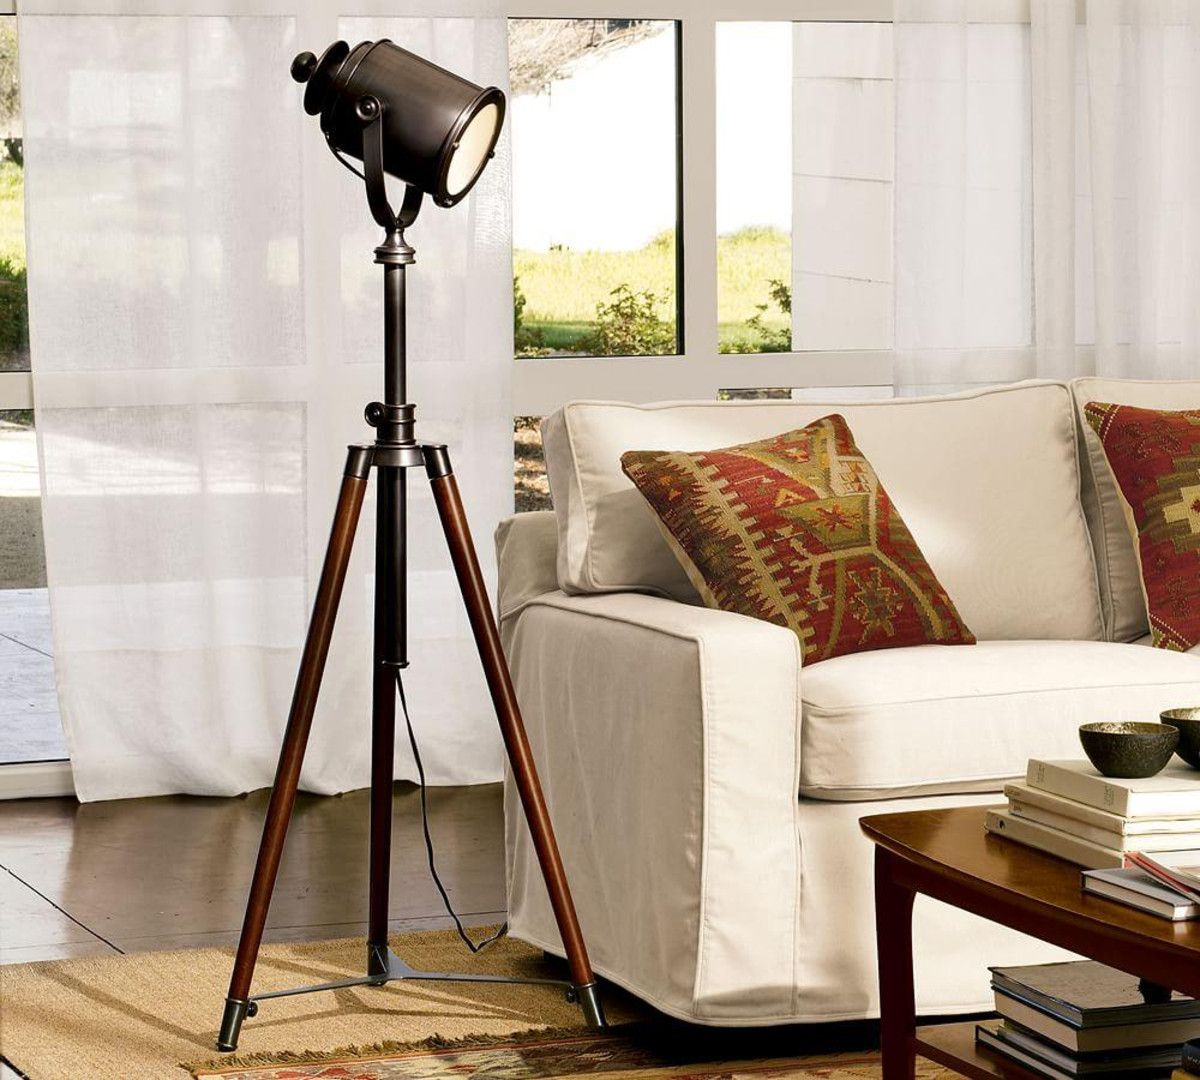 Tripod floor lamp in living room - Photographer S Tripod Floor Lamp From Pottery Barn Maybe For The Useless Corner Of Our Living Room